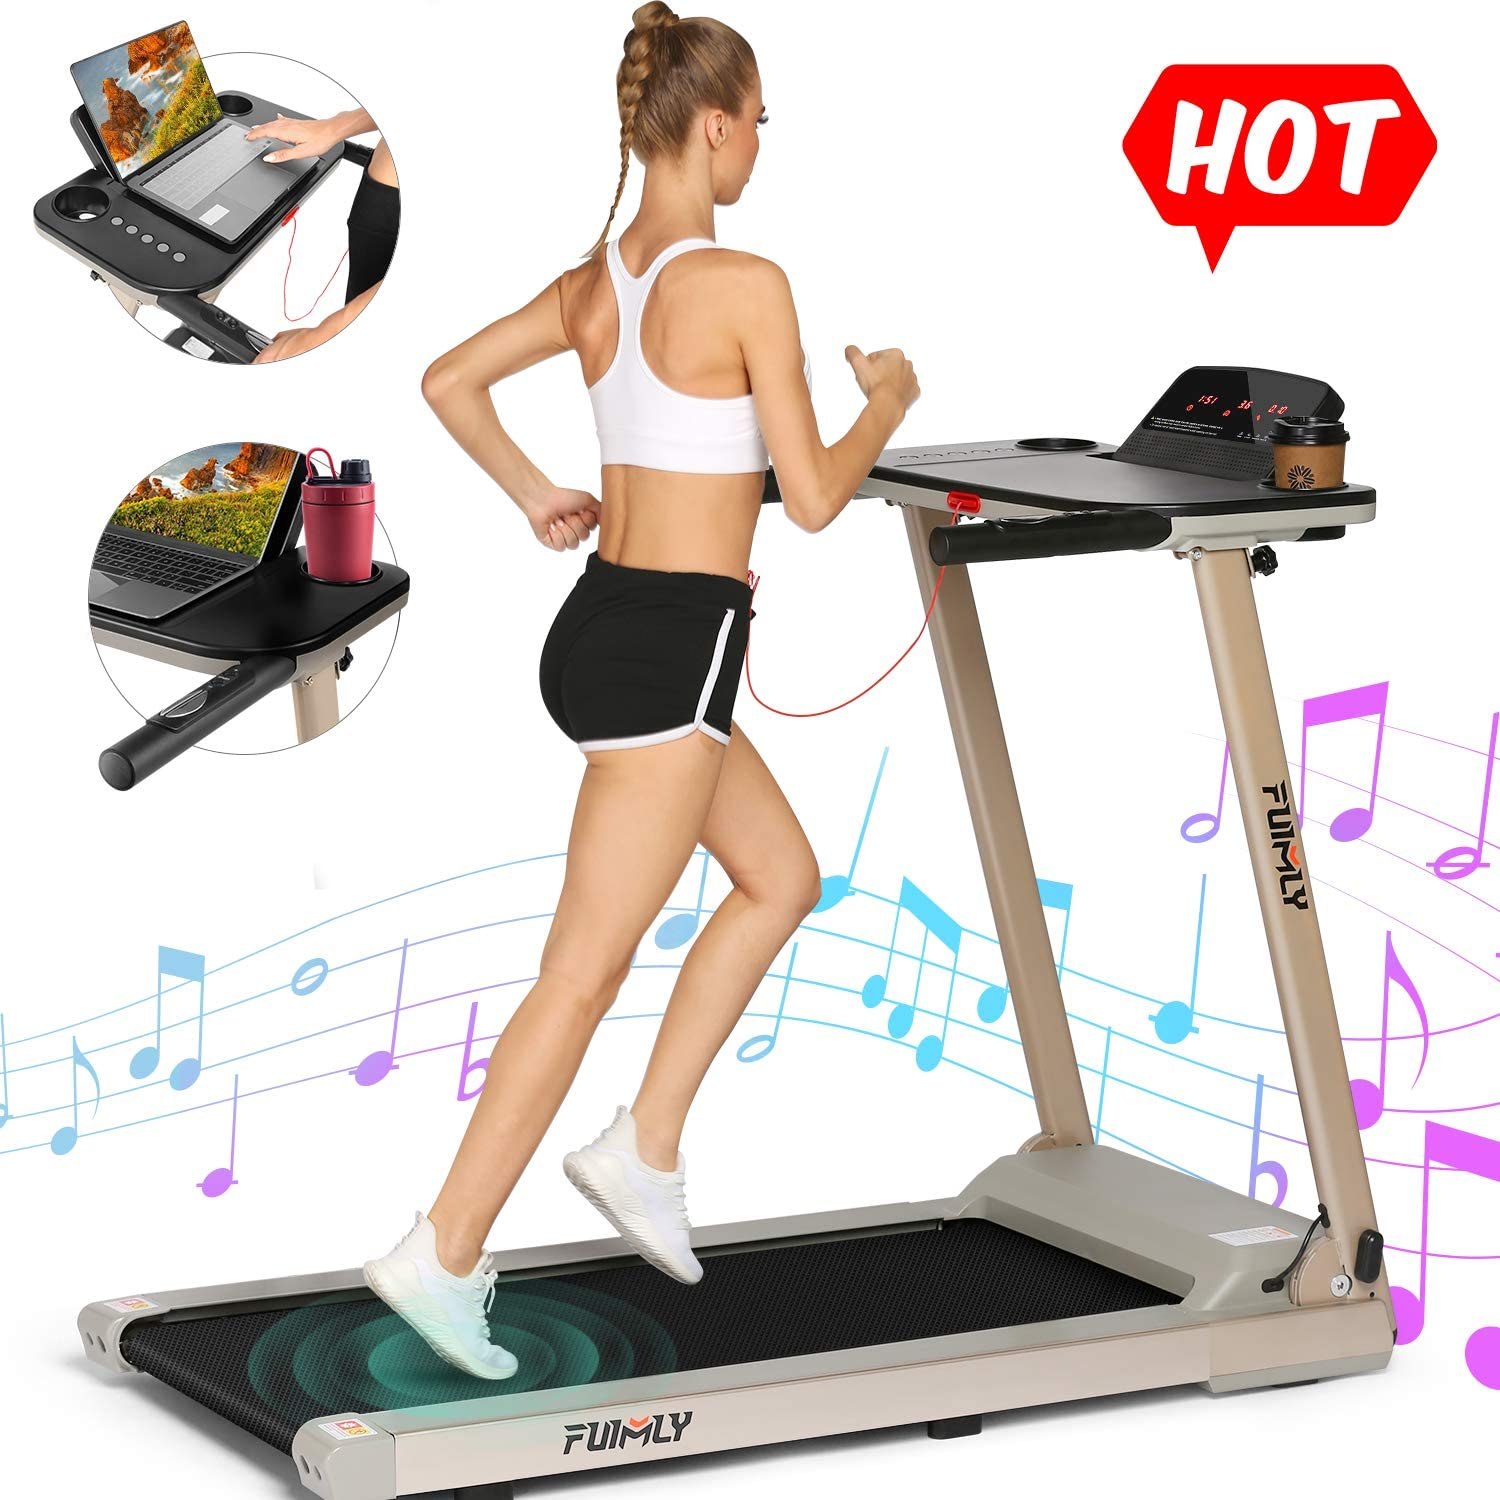 FUNMILY Treadmill, 2.25HP Folding Treadmills for Home with Table & Bluetooth Speaker & Large LCD Monitor, Zero Installation Walking Jogging Machine for Home/Office Use